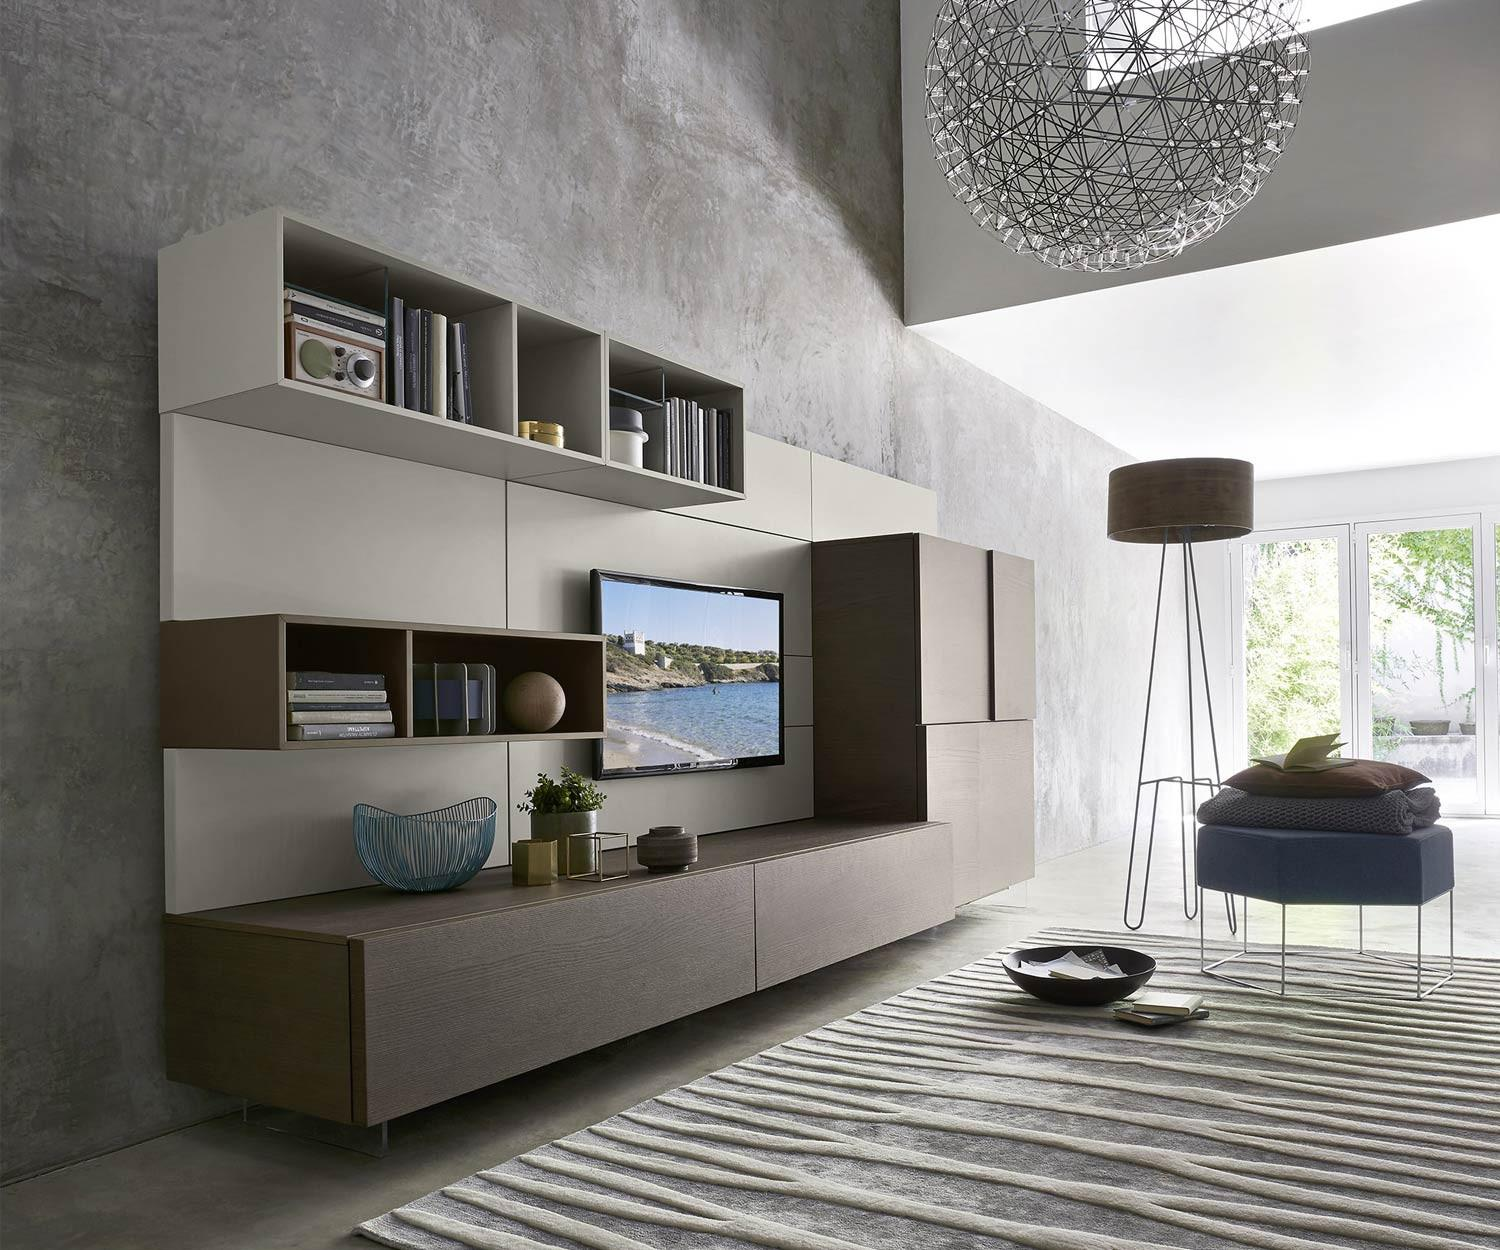 livitalia wohnwand c34 mit tv paneel und highboard. Black Bedroom Furniture Sets. Home Design Ideas